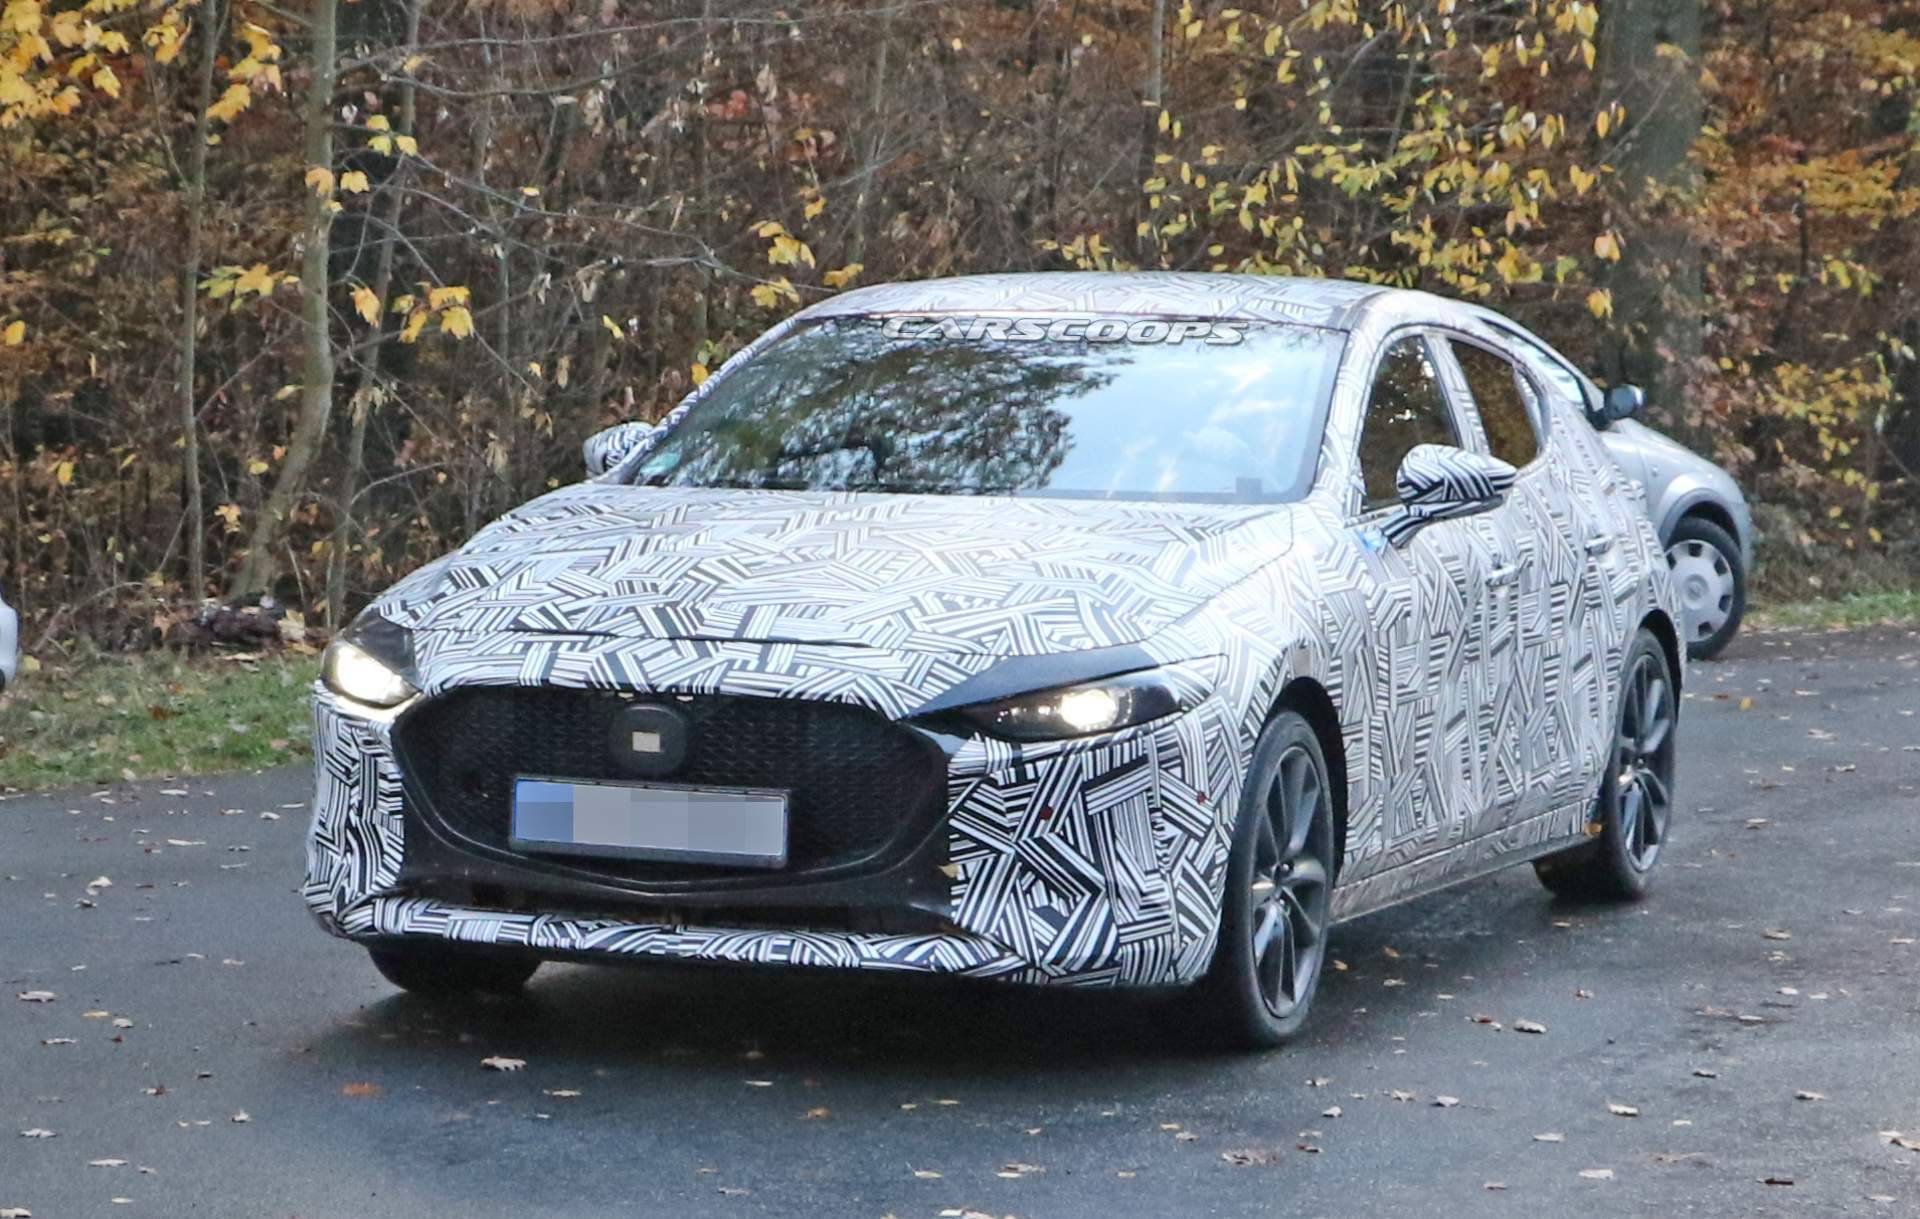 2019-mazda3-hatchback-spy-shots-7.jpg